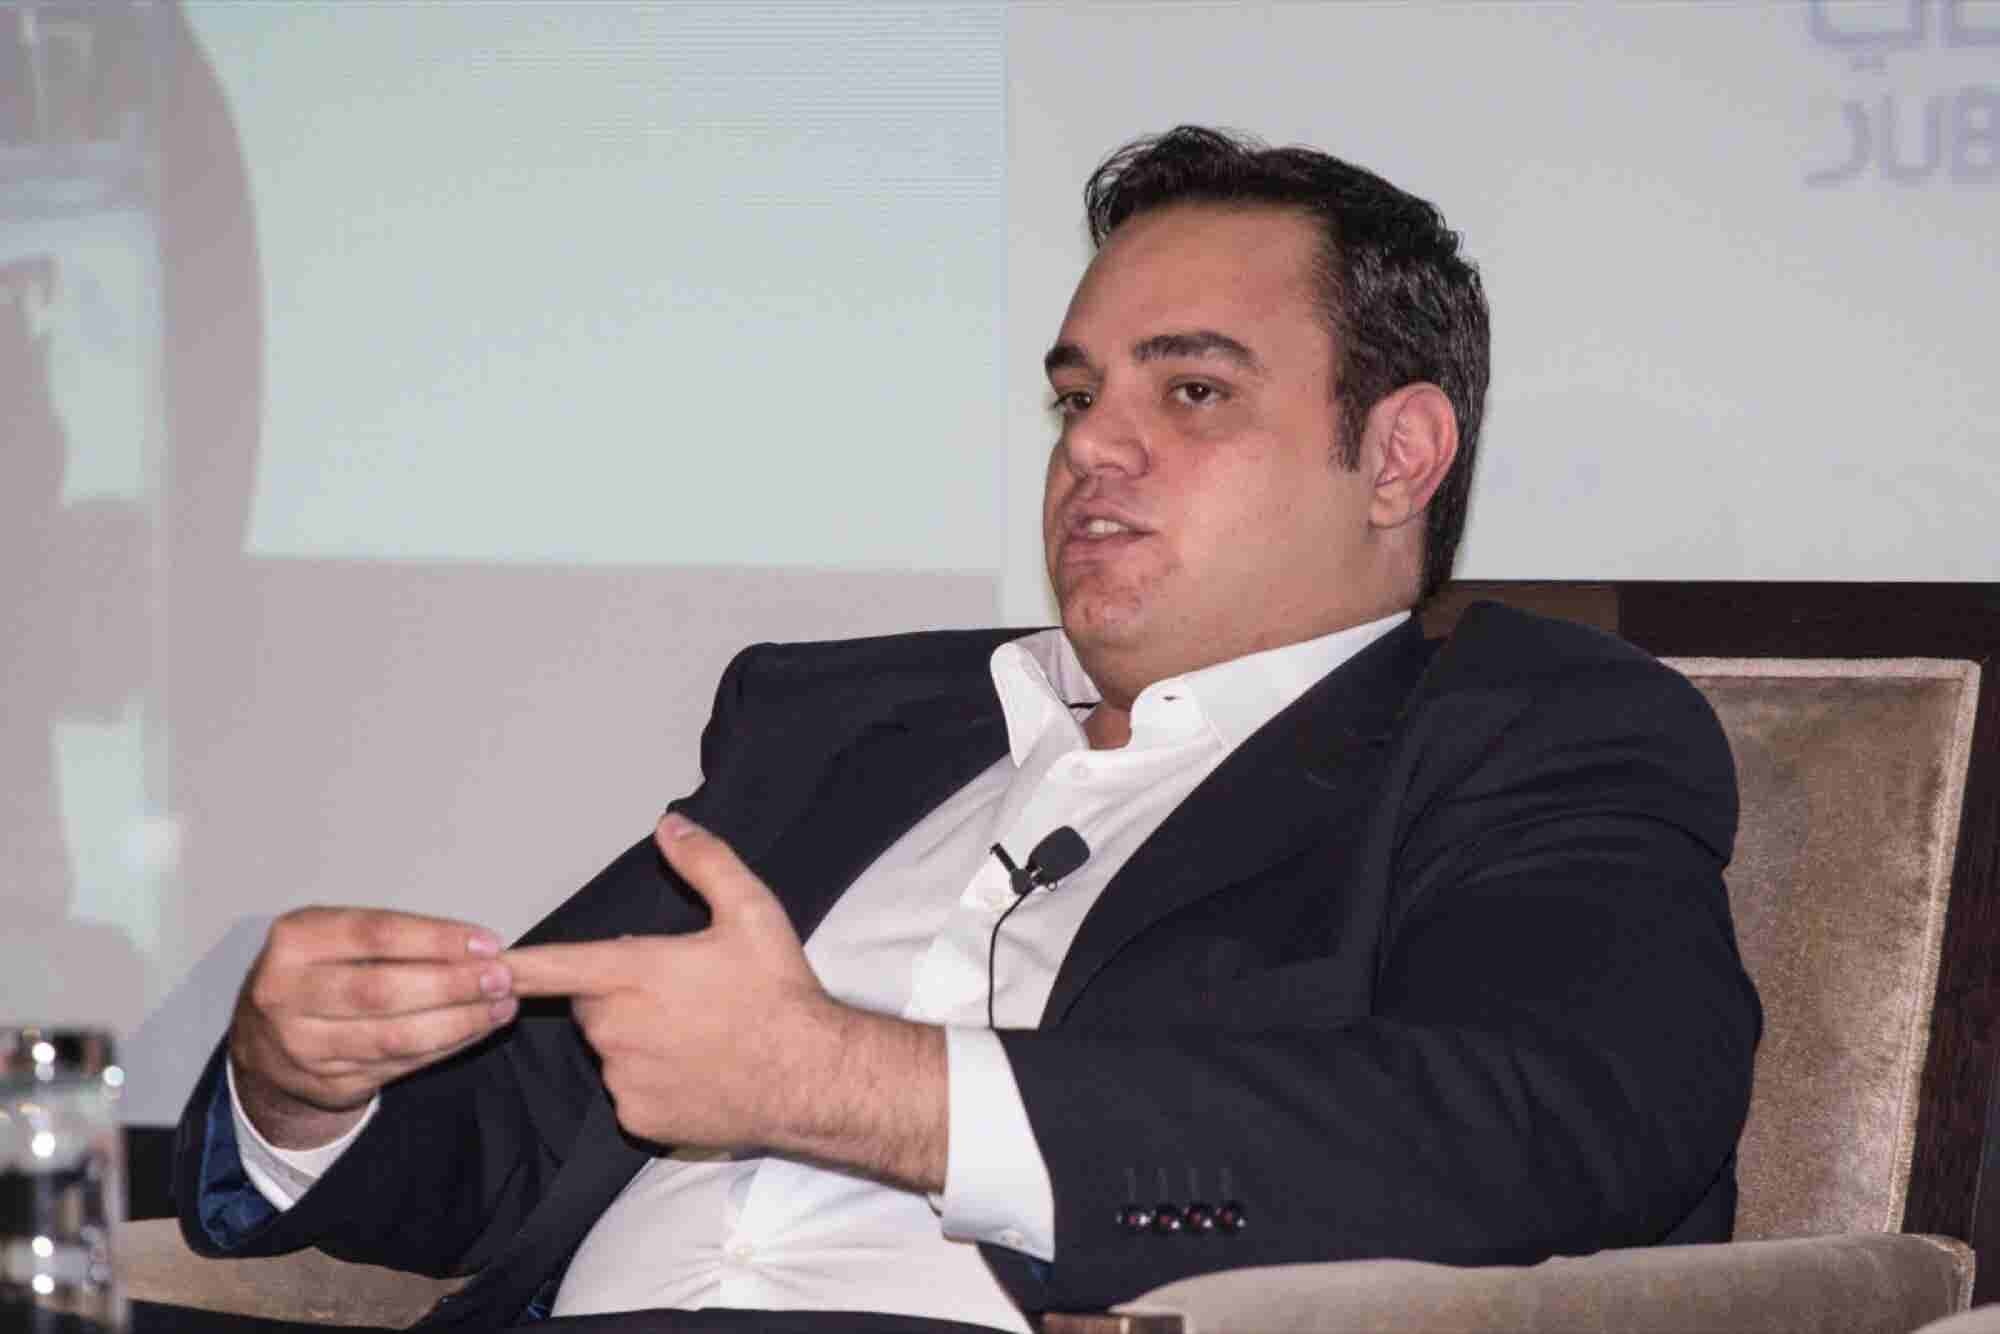 Flat6Labs CEO Ramez M. El-Serafy On The Biggest Red Flags He Has Seen In Startup Business Plans